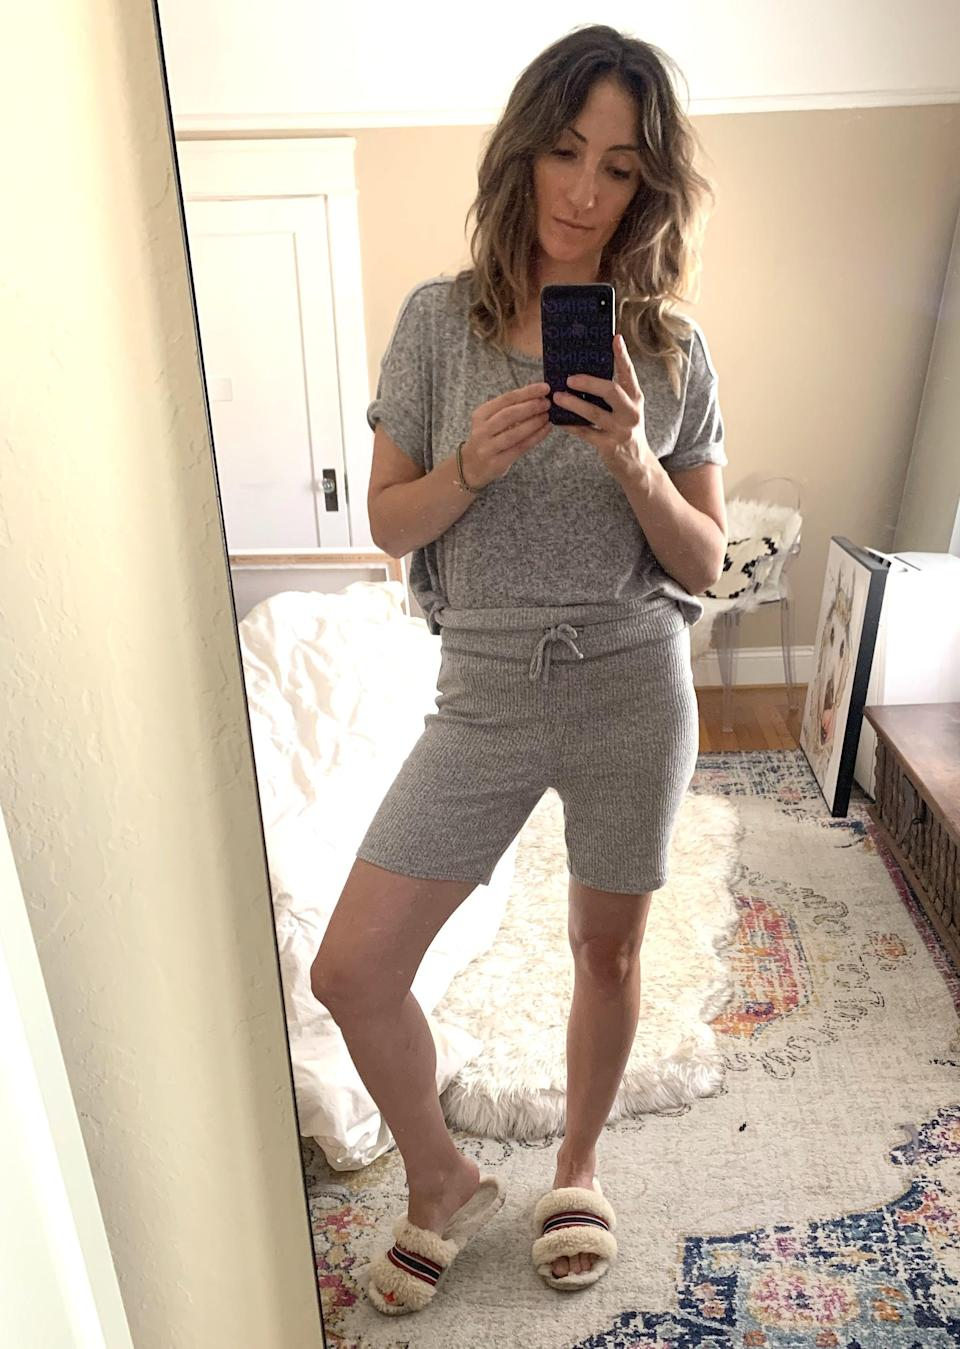 """<p><strong>The item:</strong> <span>Cozy Rib-Knit Rollover-Waist Pajama Shorts</span> (Sold Out) </p> <p><strong>What our editor said: </strong>""""The knit is ribbed and a mix of rayon, polyester, and spandex. I put them on and fell in love immediately. They hit a few inches above my knees but are long enough so my thighs don't touch while I sleep (a pet peeve)."""" - RB </p> <p>If you want to read more, here is the <a href=""""http://www.popsugar.com/fashion/comfortable-pajama-short-set-from-old-navy-47666817"""" class=""""link rapid-noclick-resp"""" rel=""""nofollow noopener"""" target=""""_blank"""" data-ylk=""""slk:complete review"""">complete review</a>.</p>"""